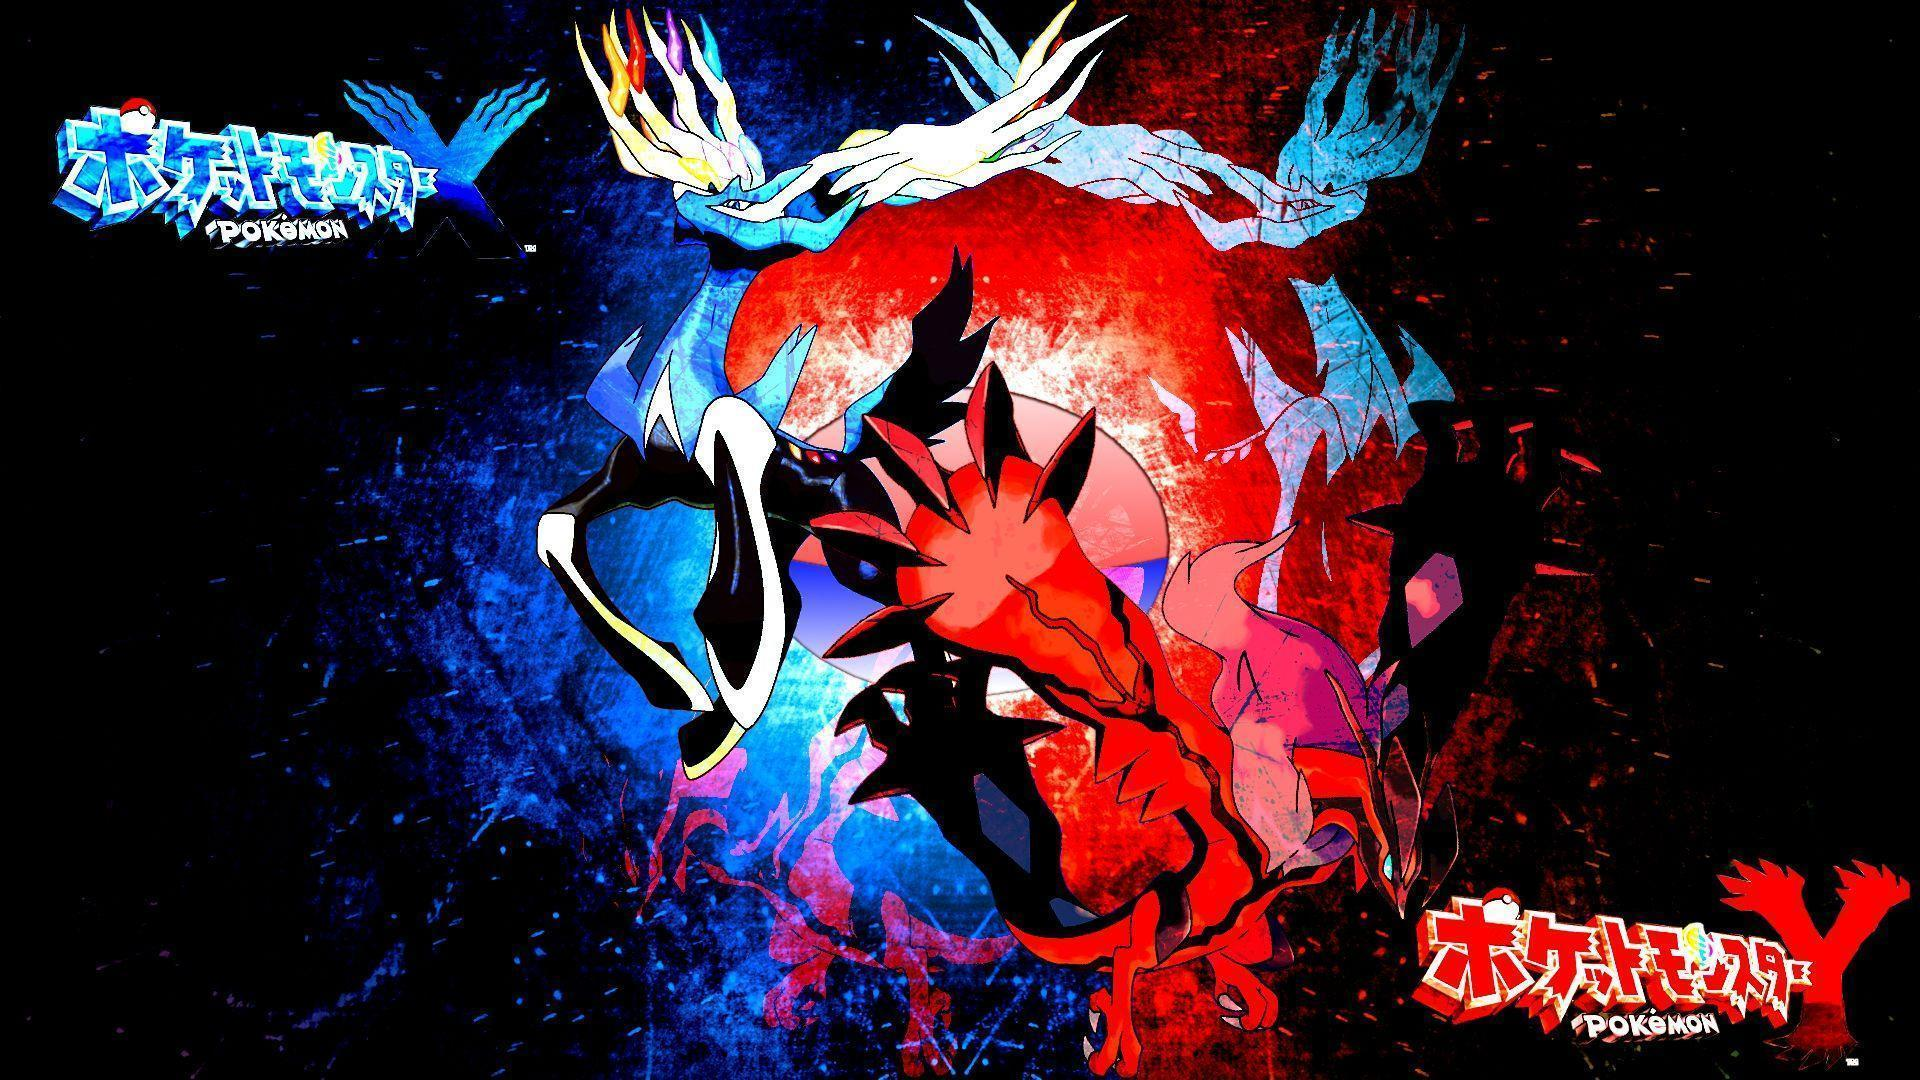 Legendary Pokemon image X/Y legendaries HD wallpapers and backgrounds